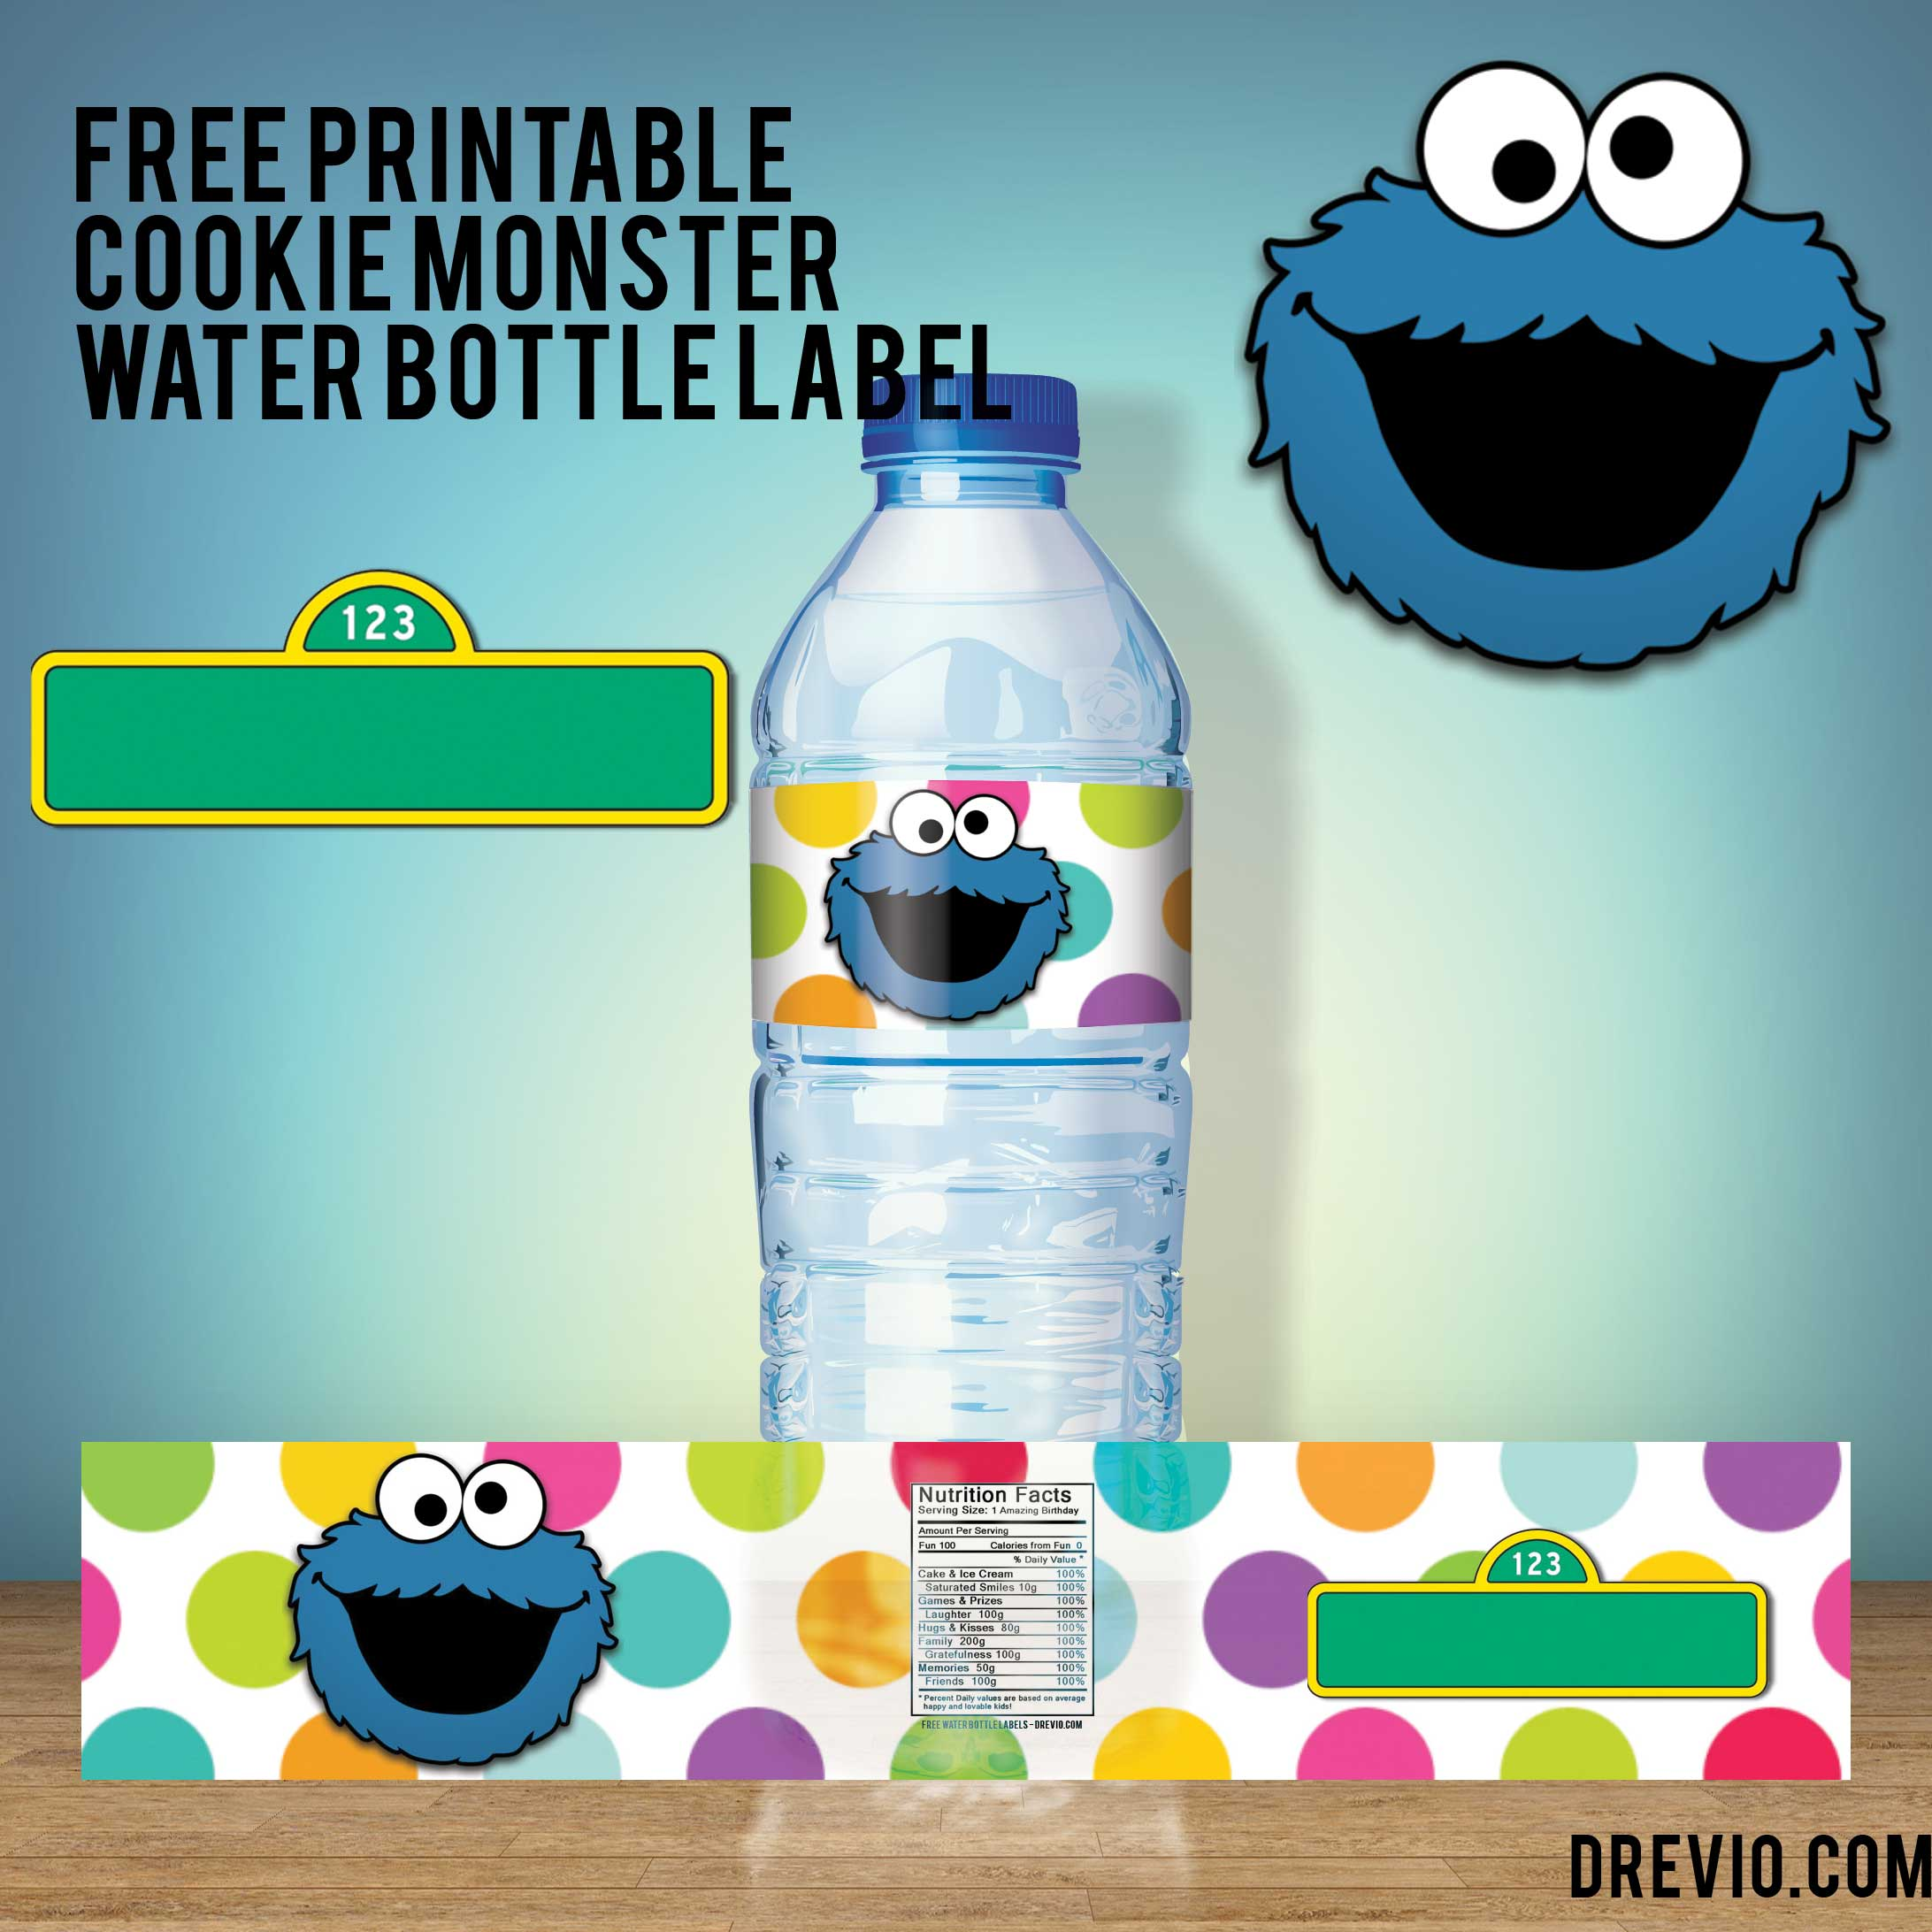 free printable cookie monster birthday invitations ; FREE-Printable-Cookie-Monster-Water-Bottle-Label-Preview